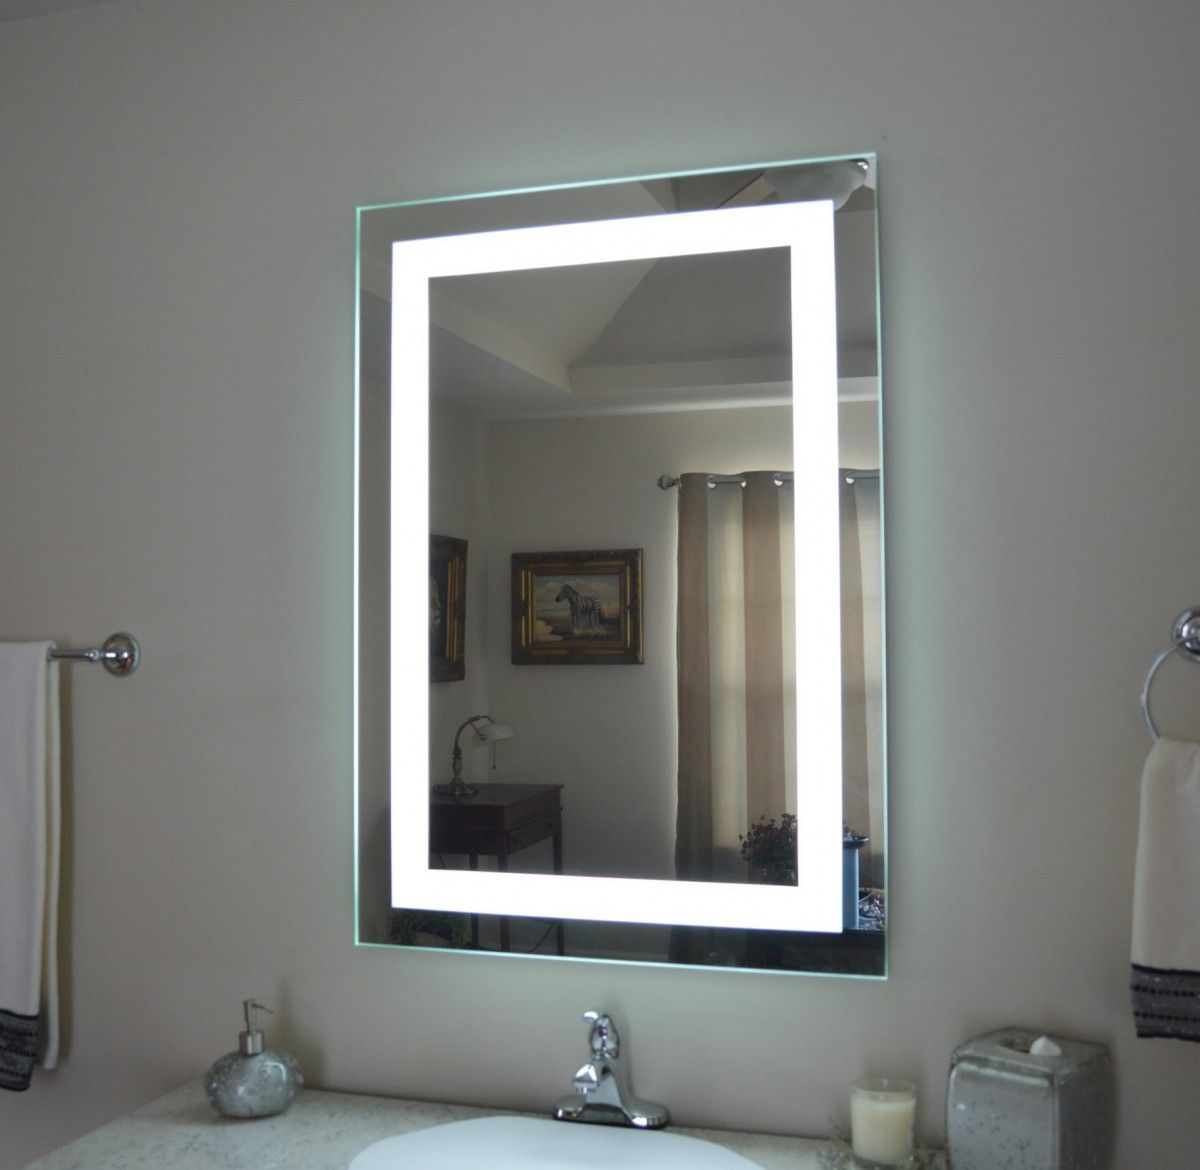 bathroom mirror led - google search | asia sf from ayman